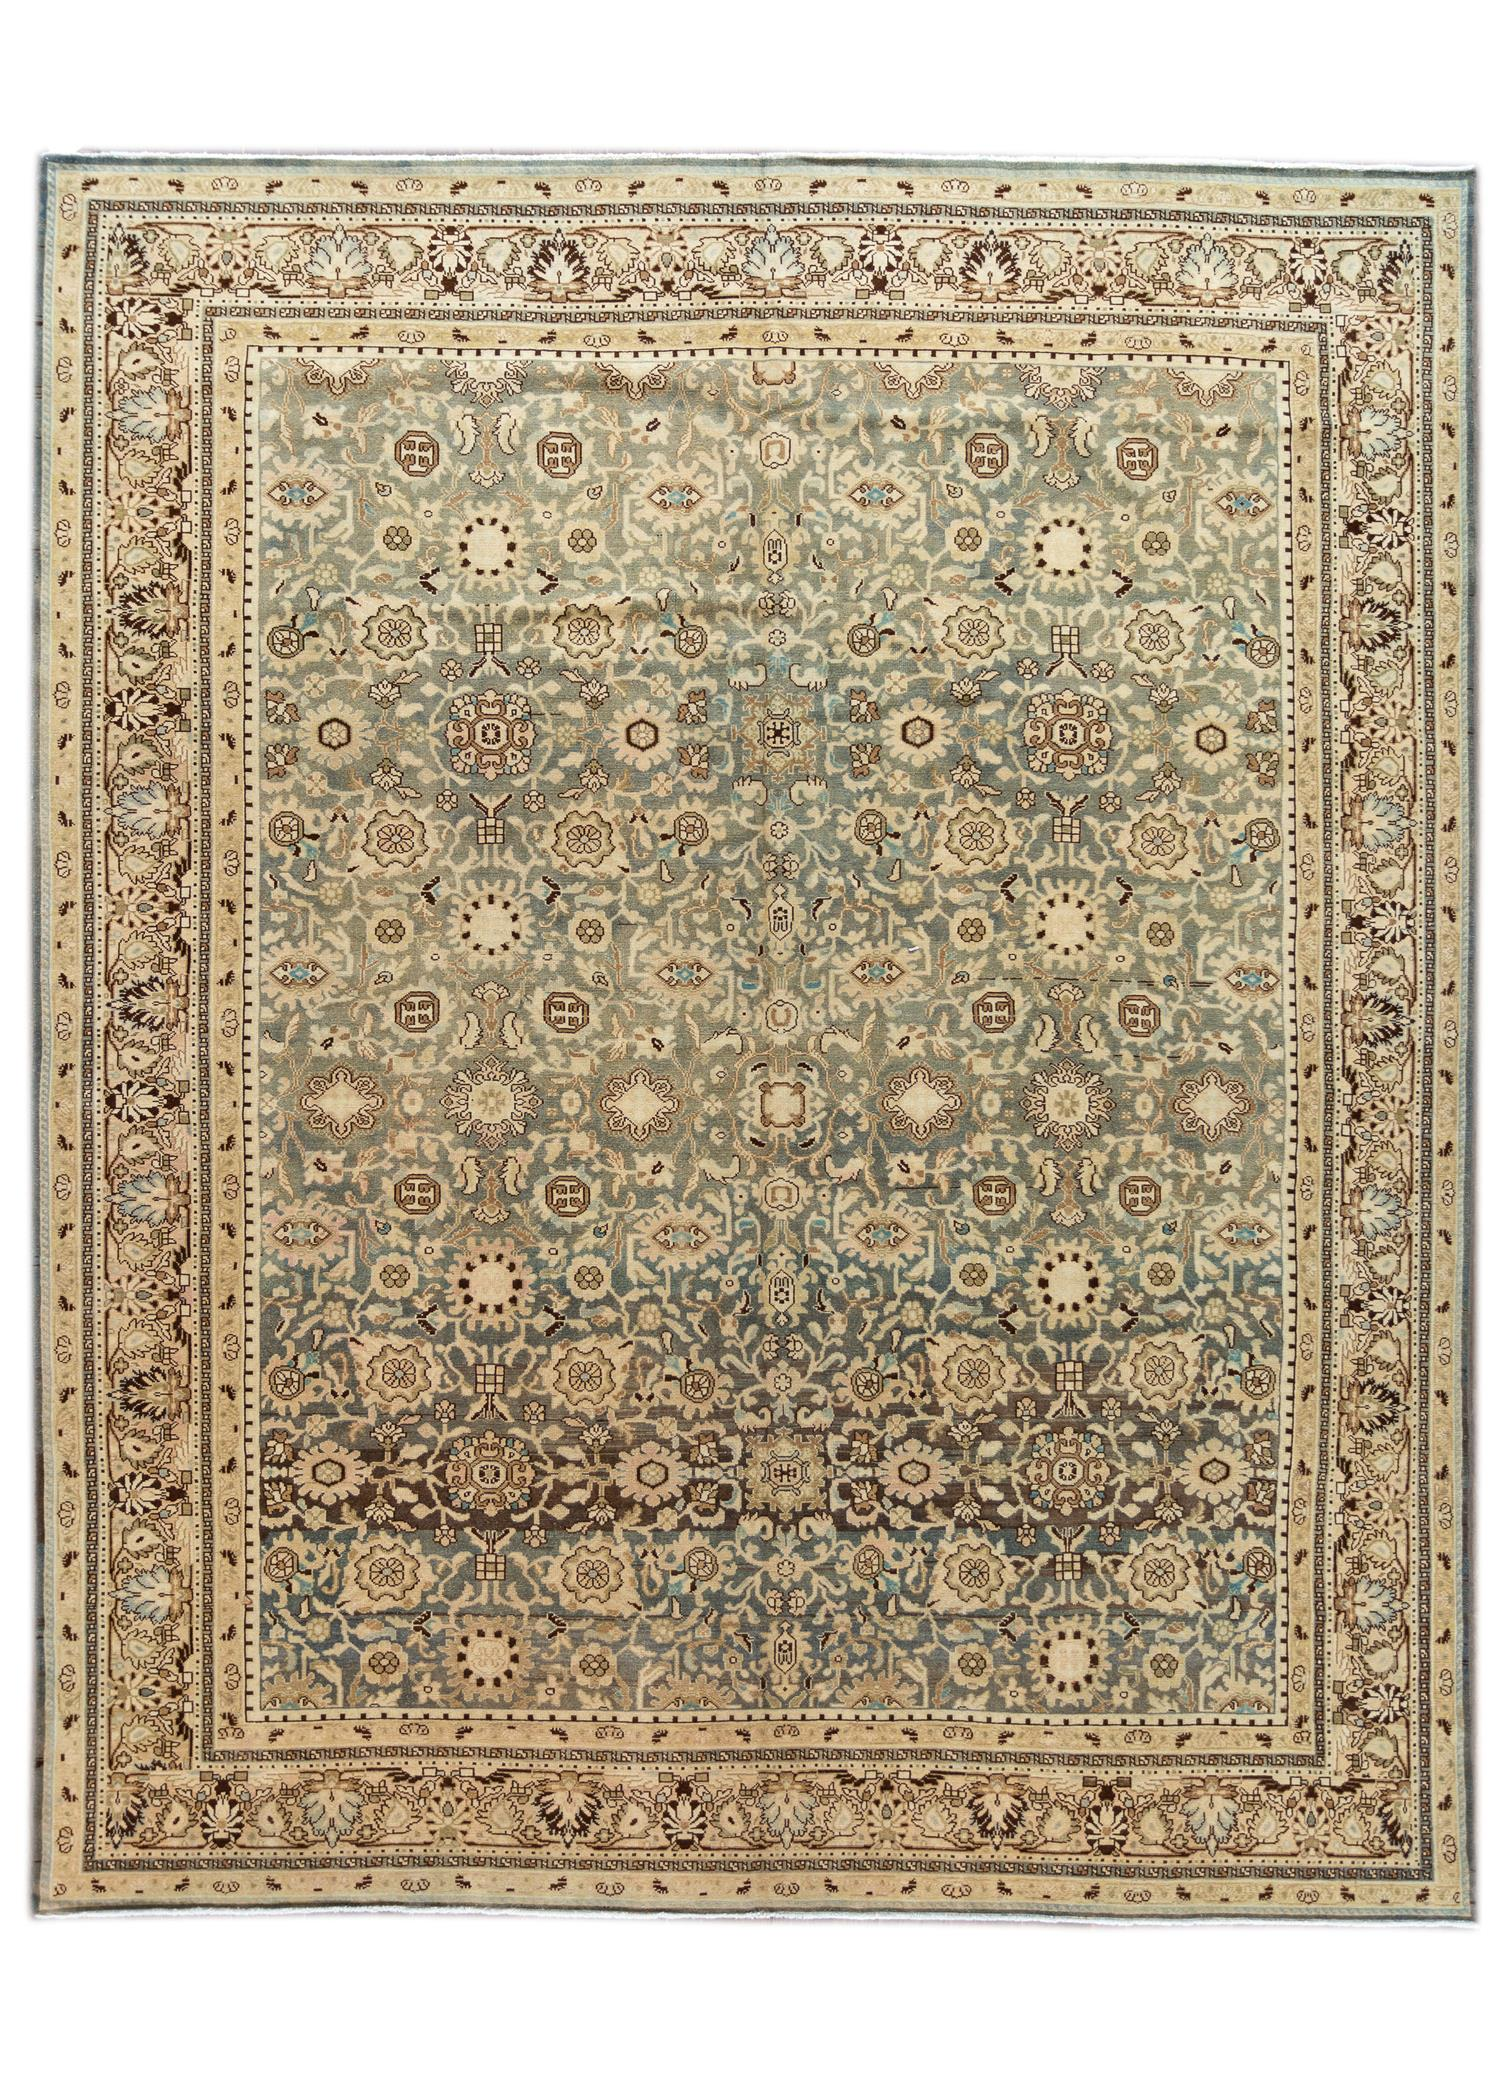 Antique Malayer Rug, #10235248, 11' x 14'